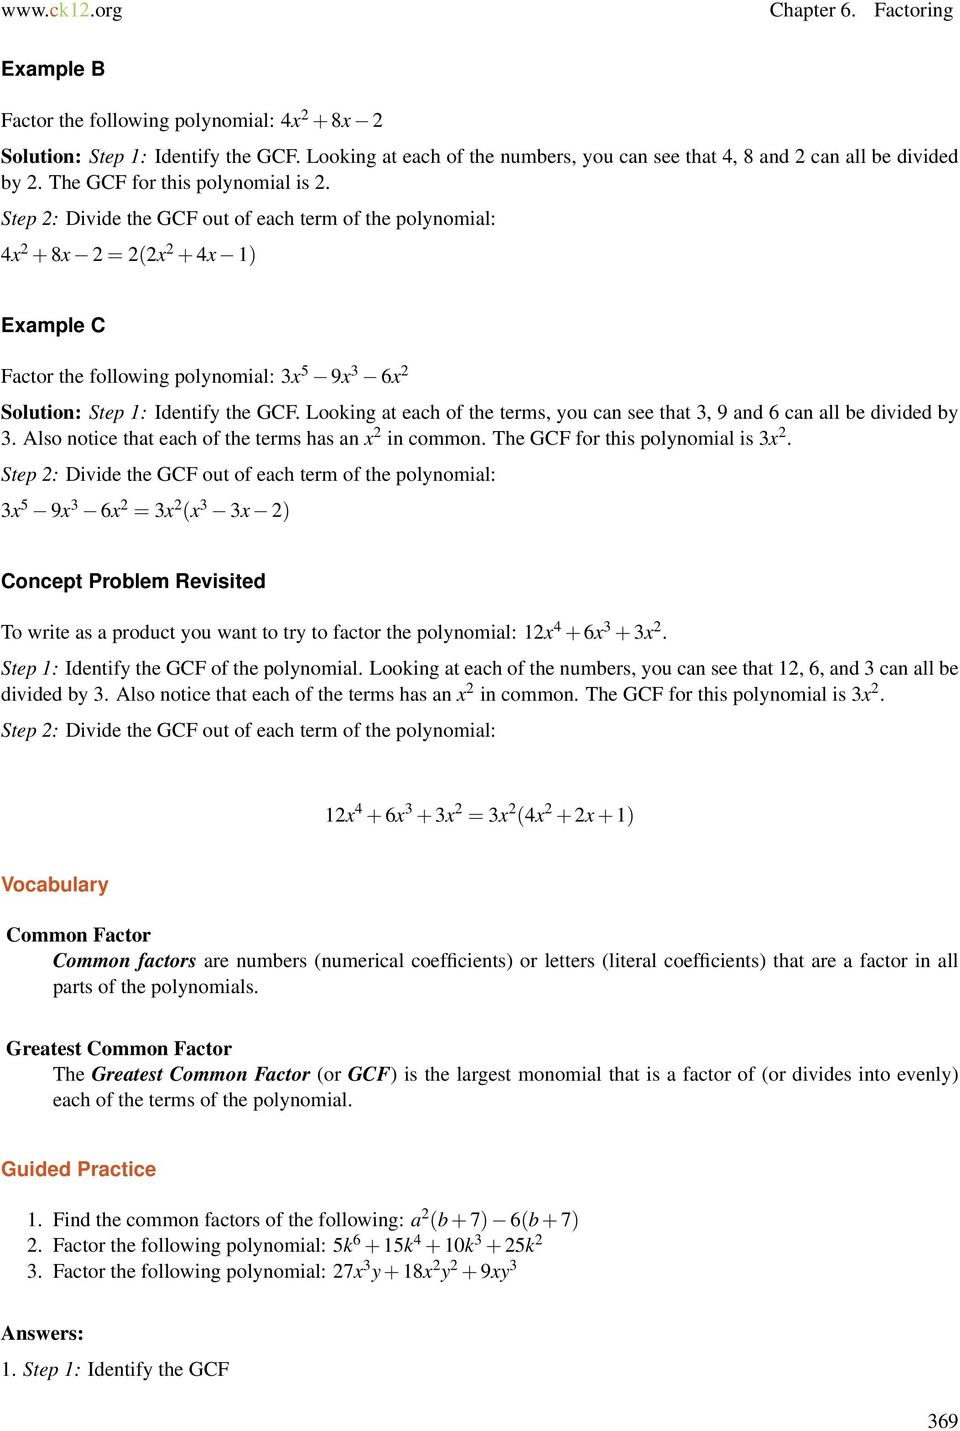 Veterans upward bound algebra i concepts honors pdf step 2 divide the gcf out of each term of the polynomial 4x 2 ibookread ePUb